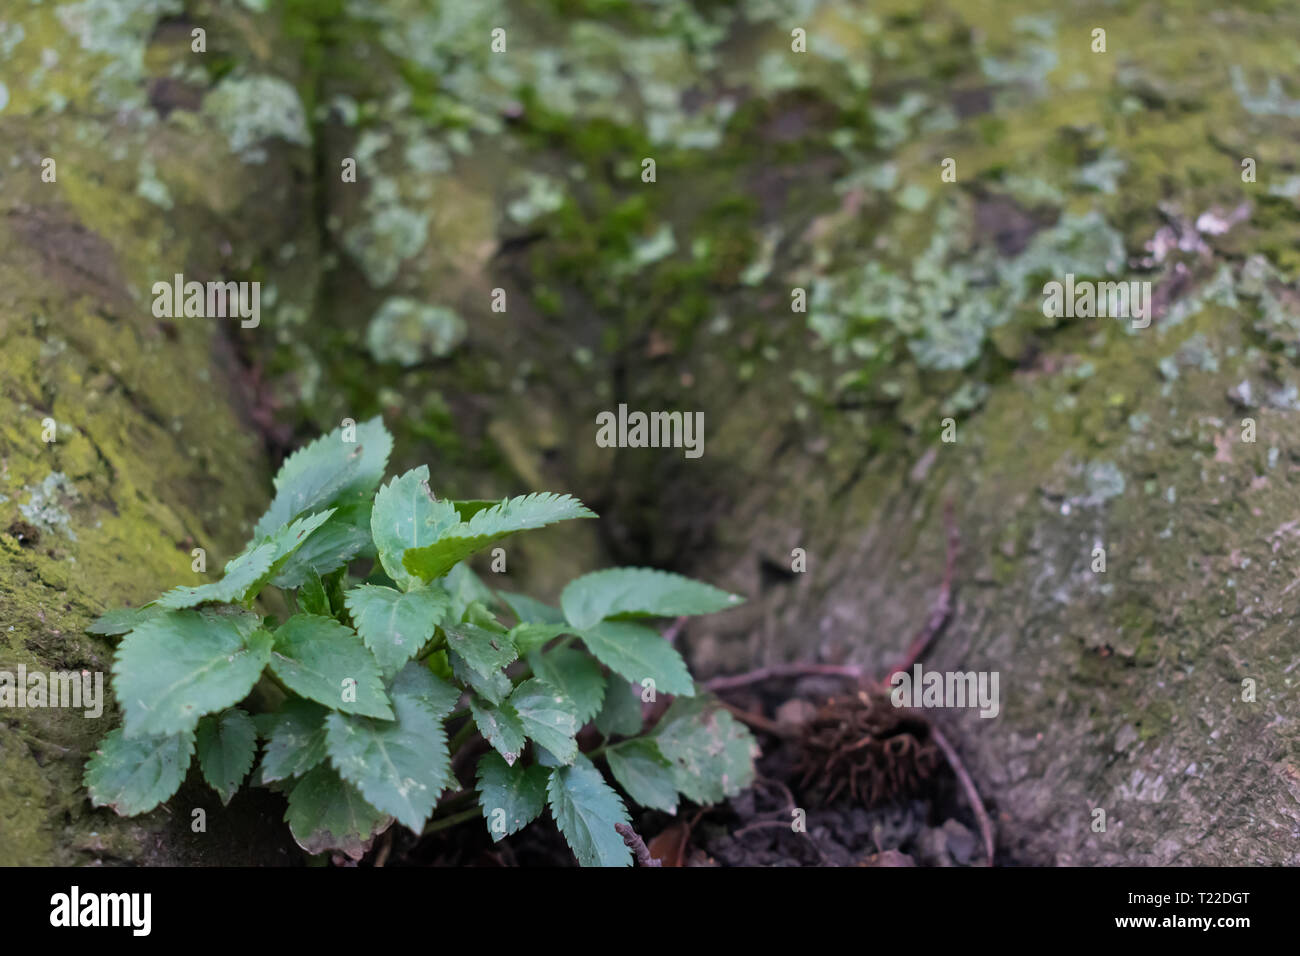 Small plant against giant tree. Close-up of new spring growth - Stock Image